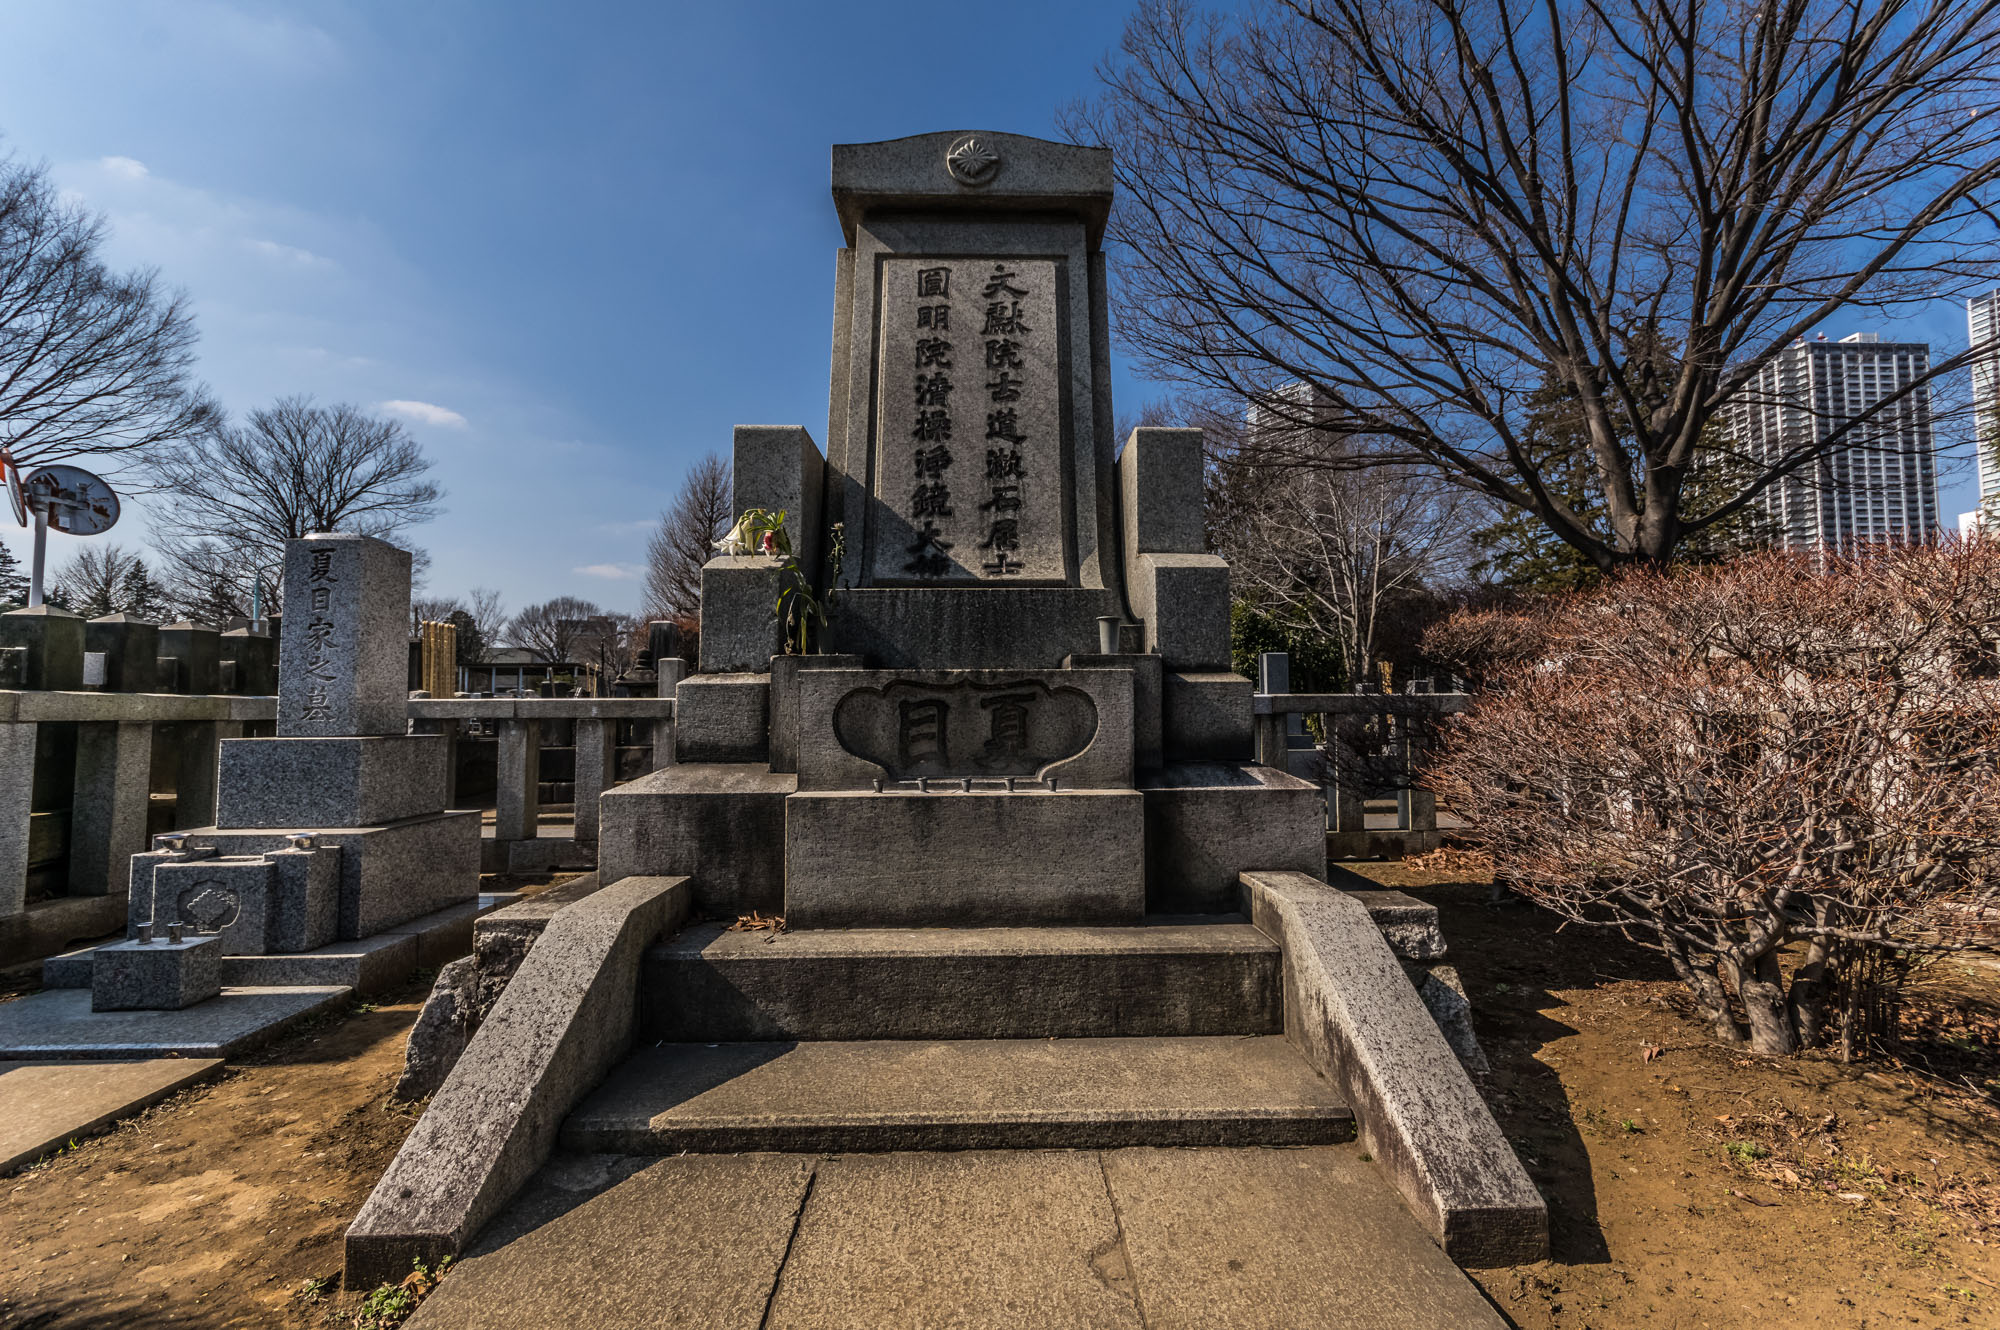 The grave of famous Japanese author Soseki Natsume